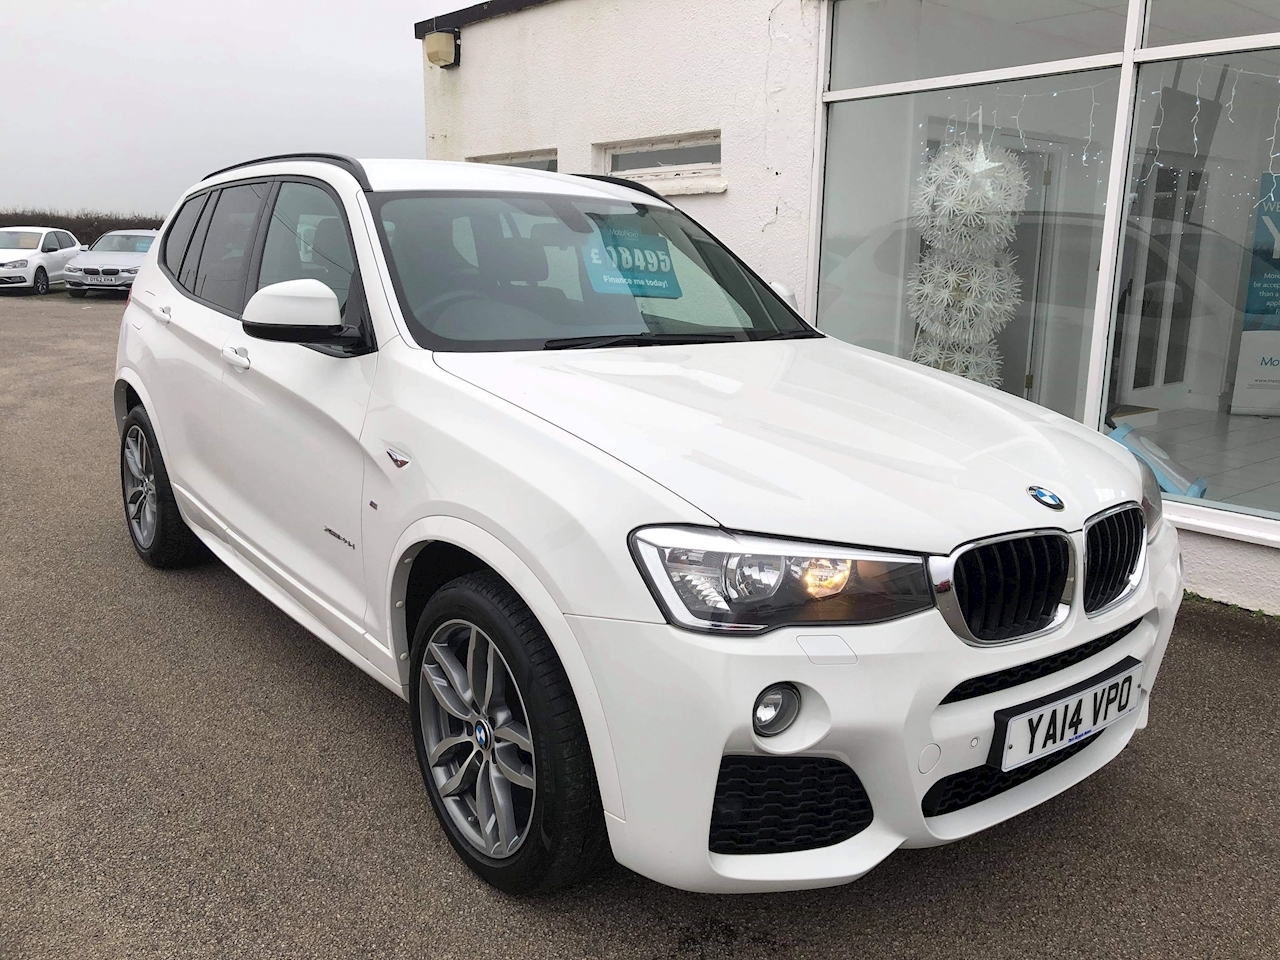 X3 Xdrive20d M Sport Estate 2.0 Automatic Diesel